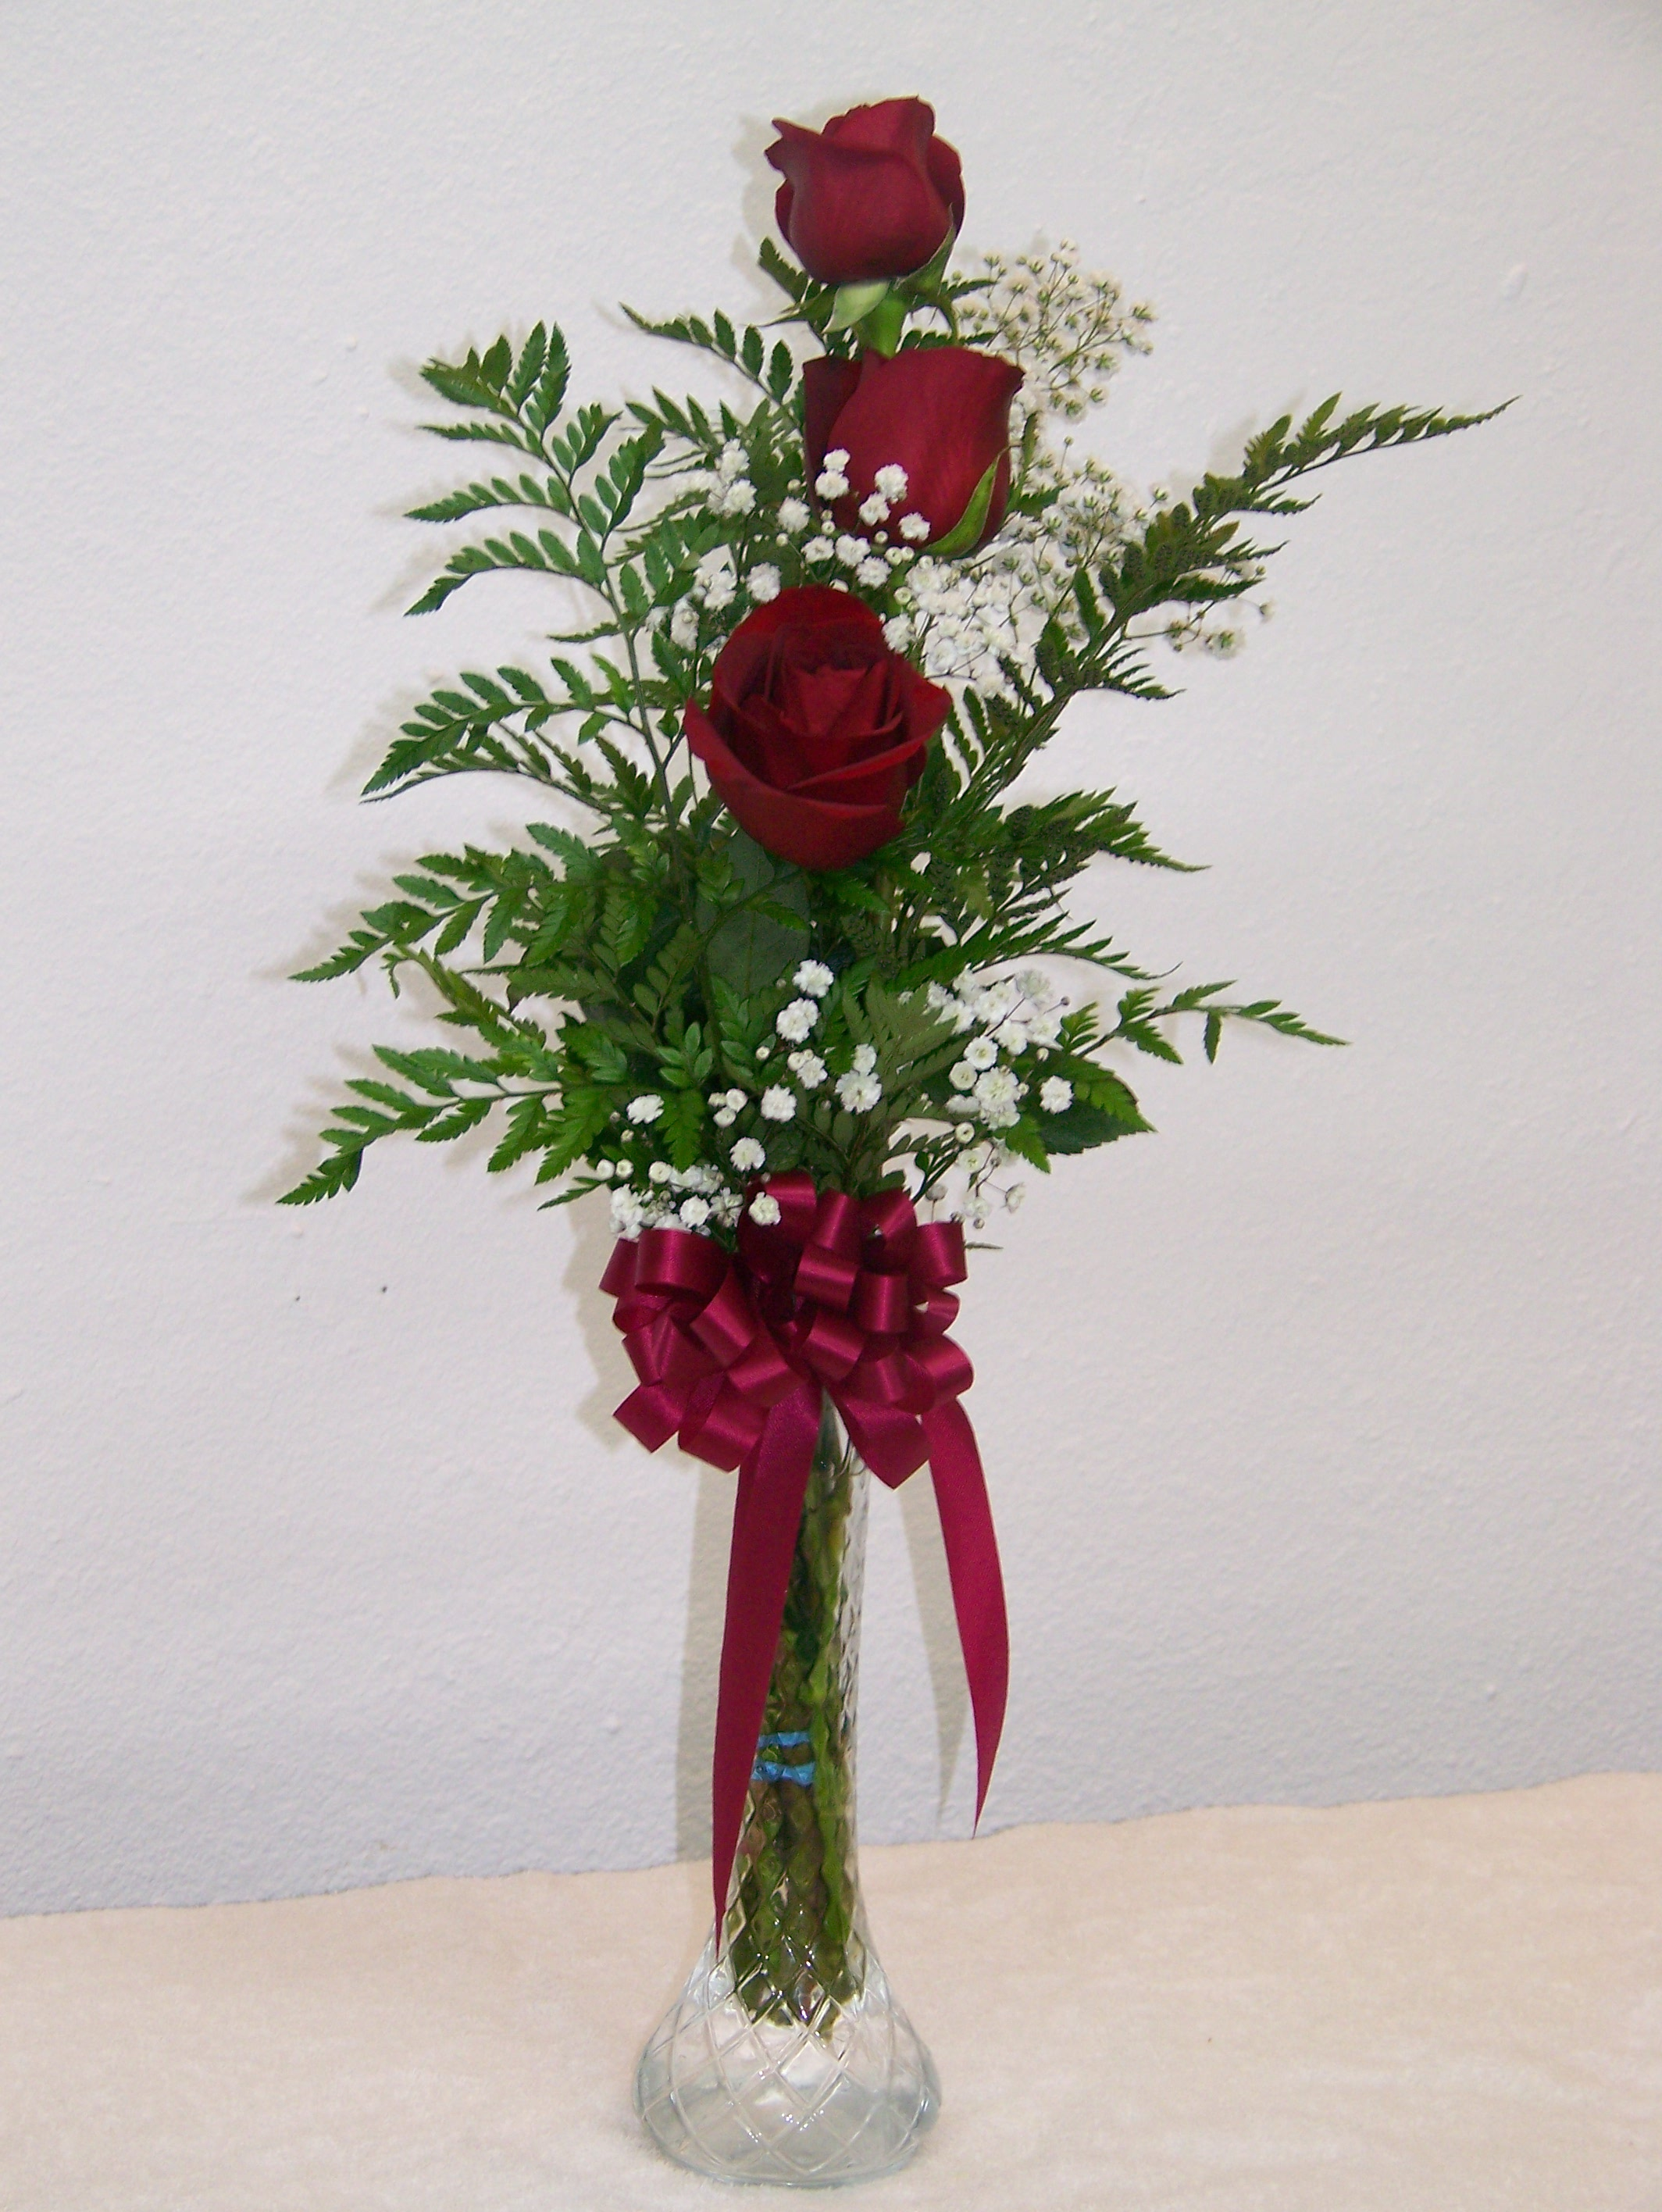 Barstow Flower Bridal Boutique : Red roses in bud vase barstow floral bridal